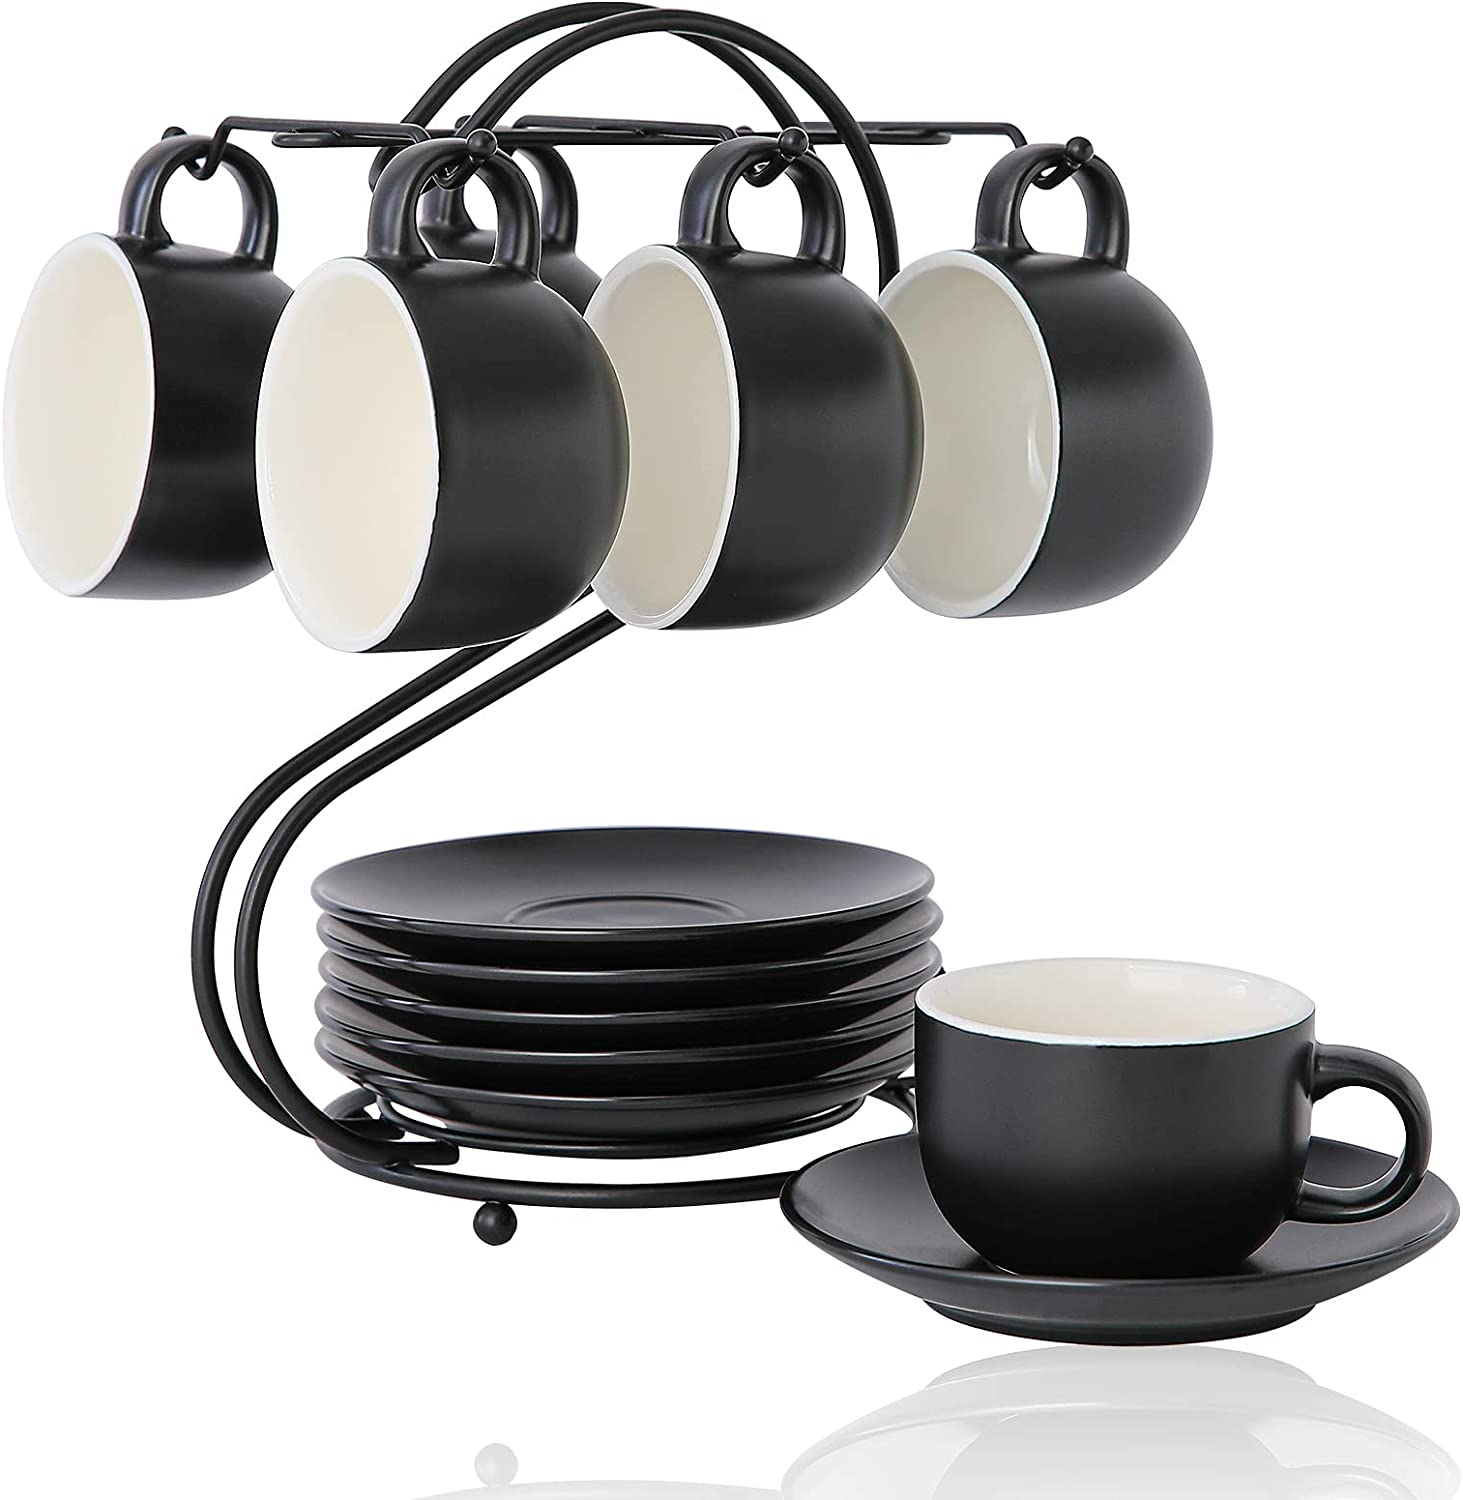 Porcelain Expresso San Jose Mall Cups 4.5oz with Choice Metal Saucers Candi Stand